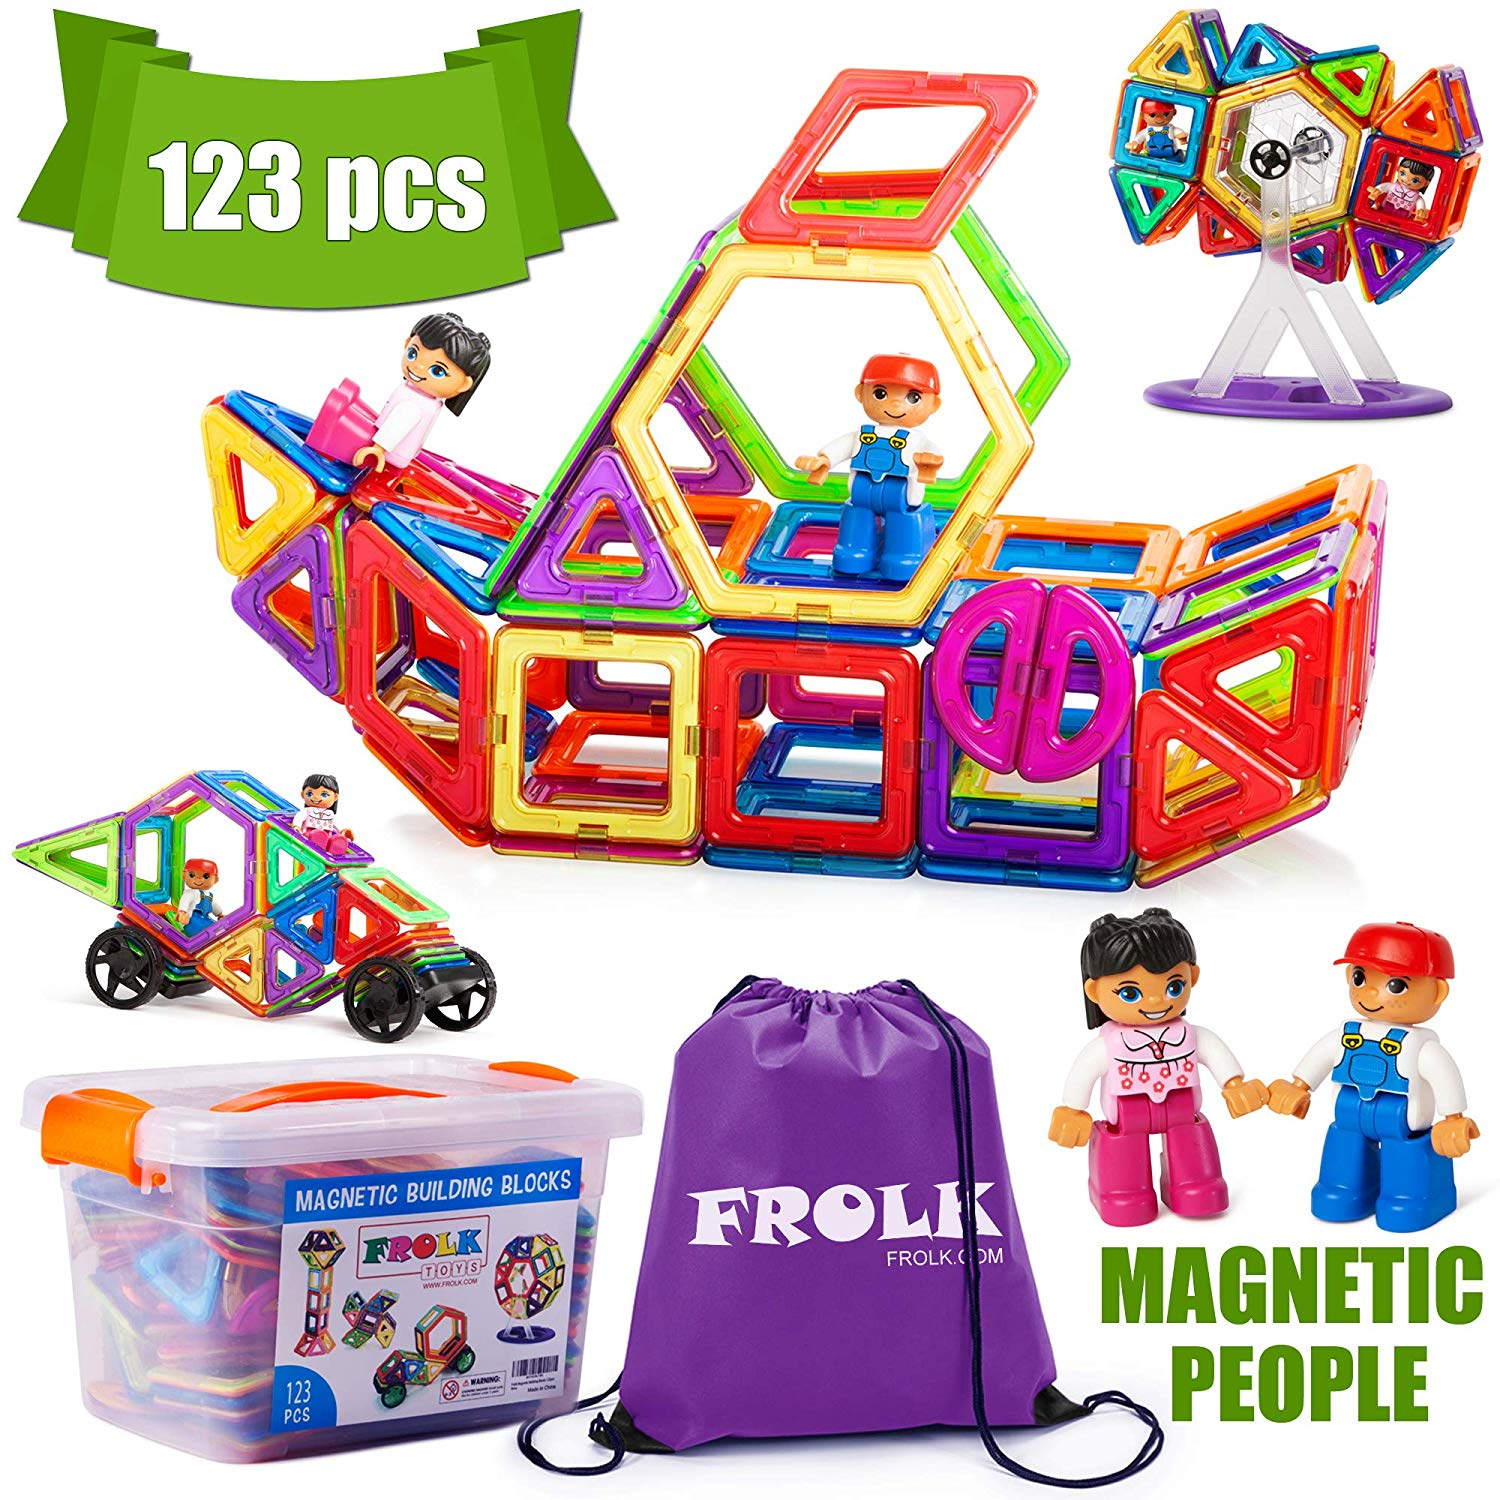 Frolk Magnetic Building Blocks Set , Unique Bonus - Magnetic Figures - 123 Piece :Colorful Tiles, Educational Cards, Wheels .Educational Toy for Girls and Boys. Premium Gift for Kids.